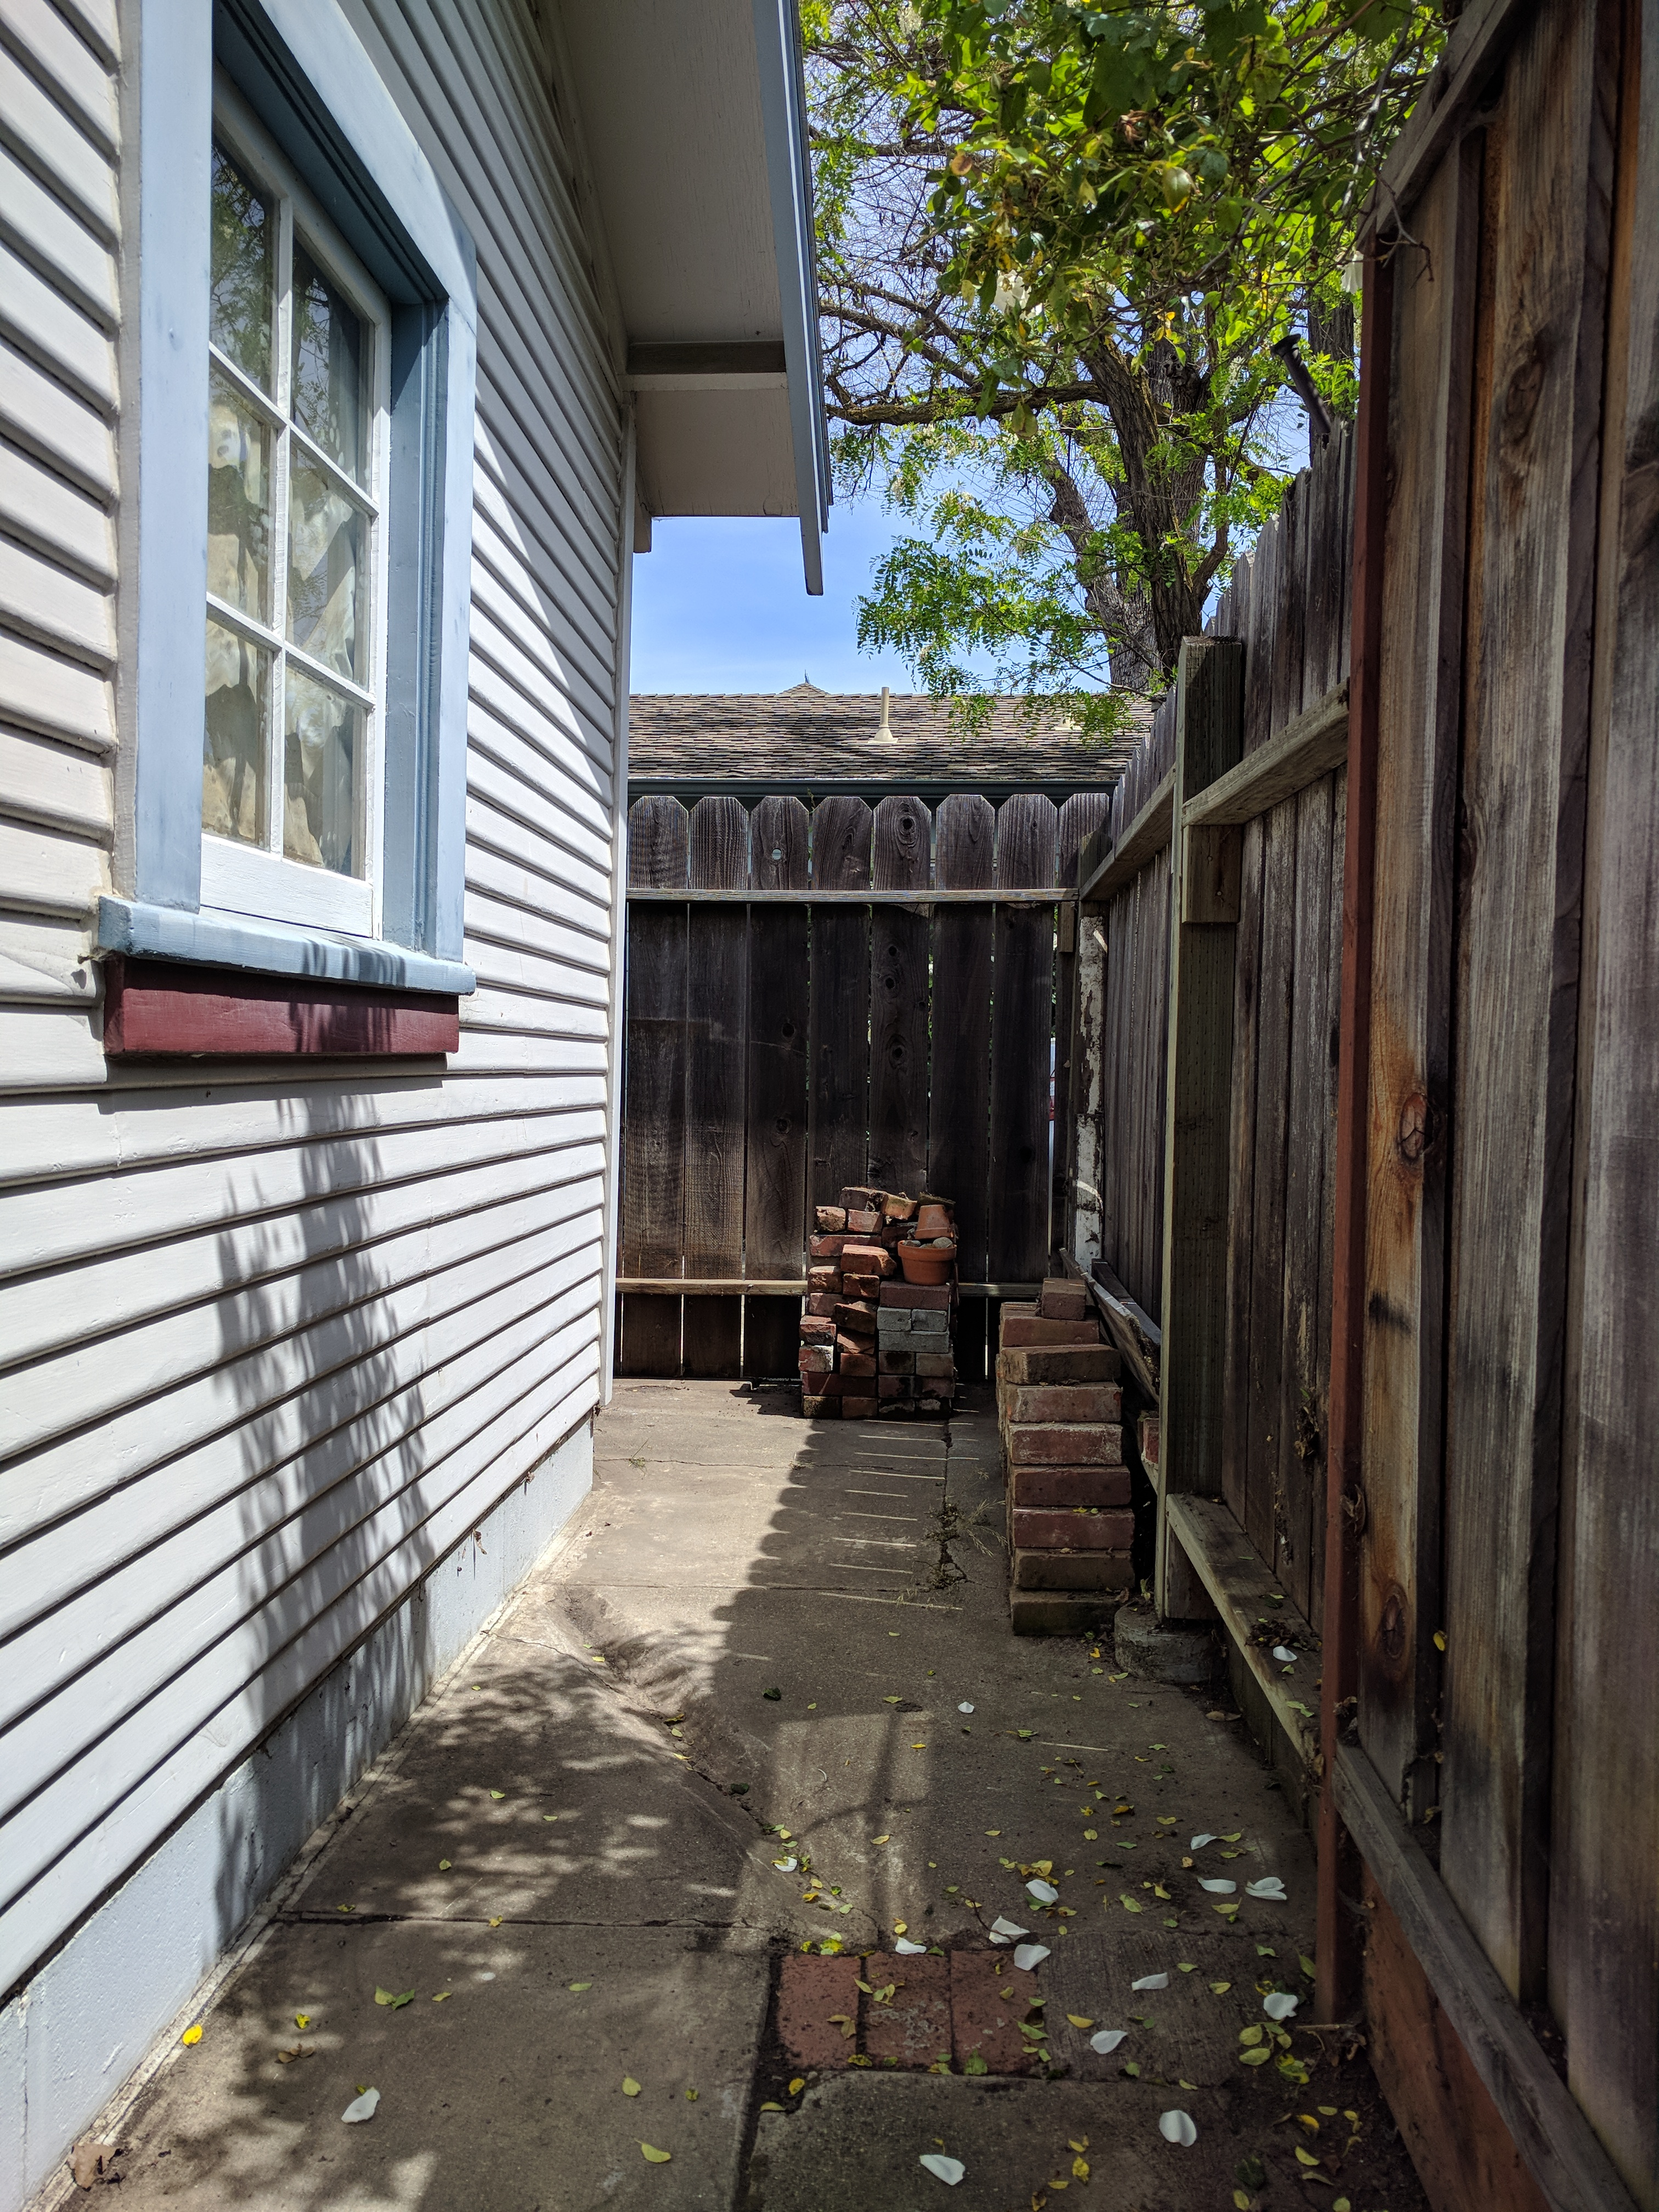 This Area Behind The Red Dog Garage Had Been A Collection Of Lumber, Pots,  And Just About Anything That Could Be Used But Never Was.